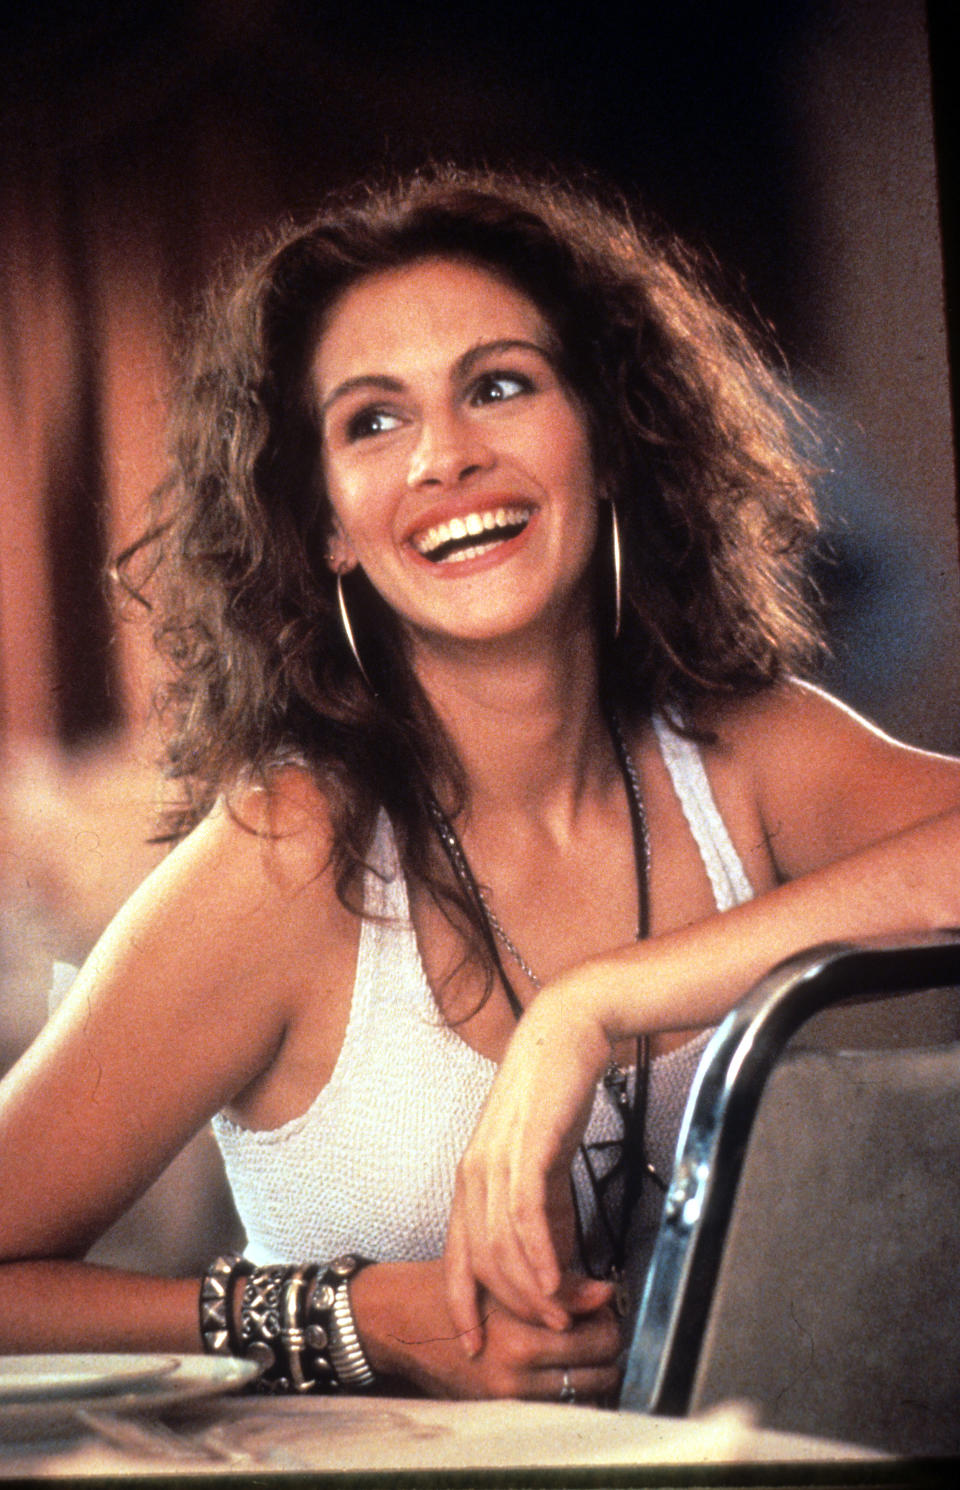 Julia Roberts in a scene from the film 'Pretty Woman', 1990. (Photo by Buena Vista/Getty Images)